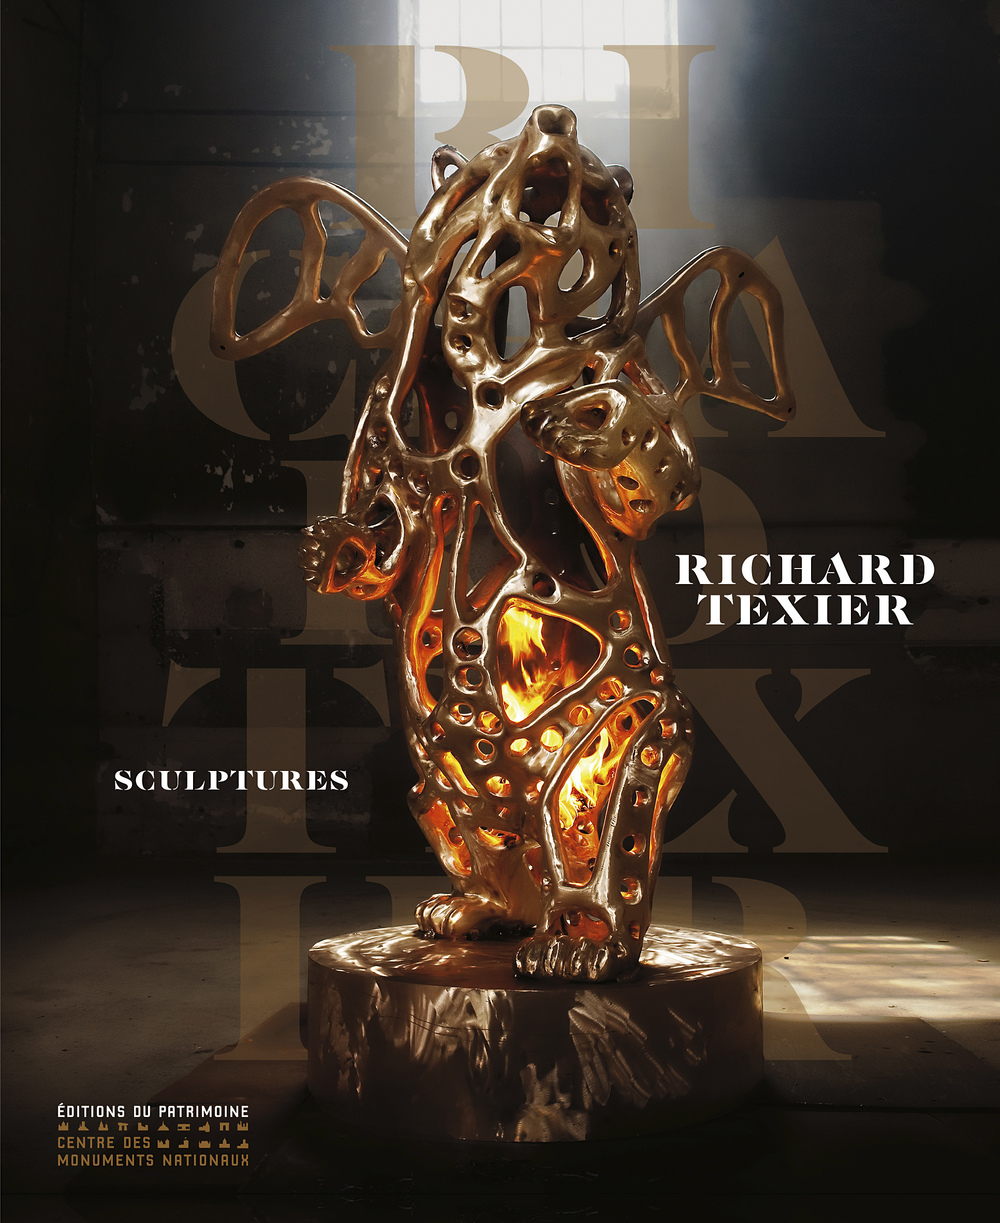 Richard Texier Sculpture Book of his art